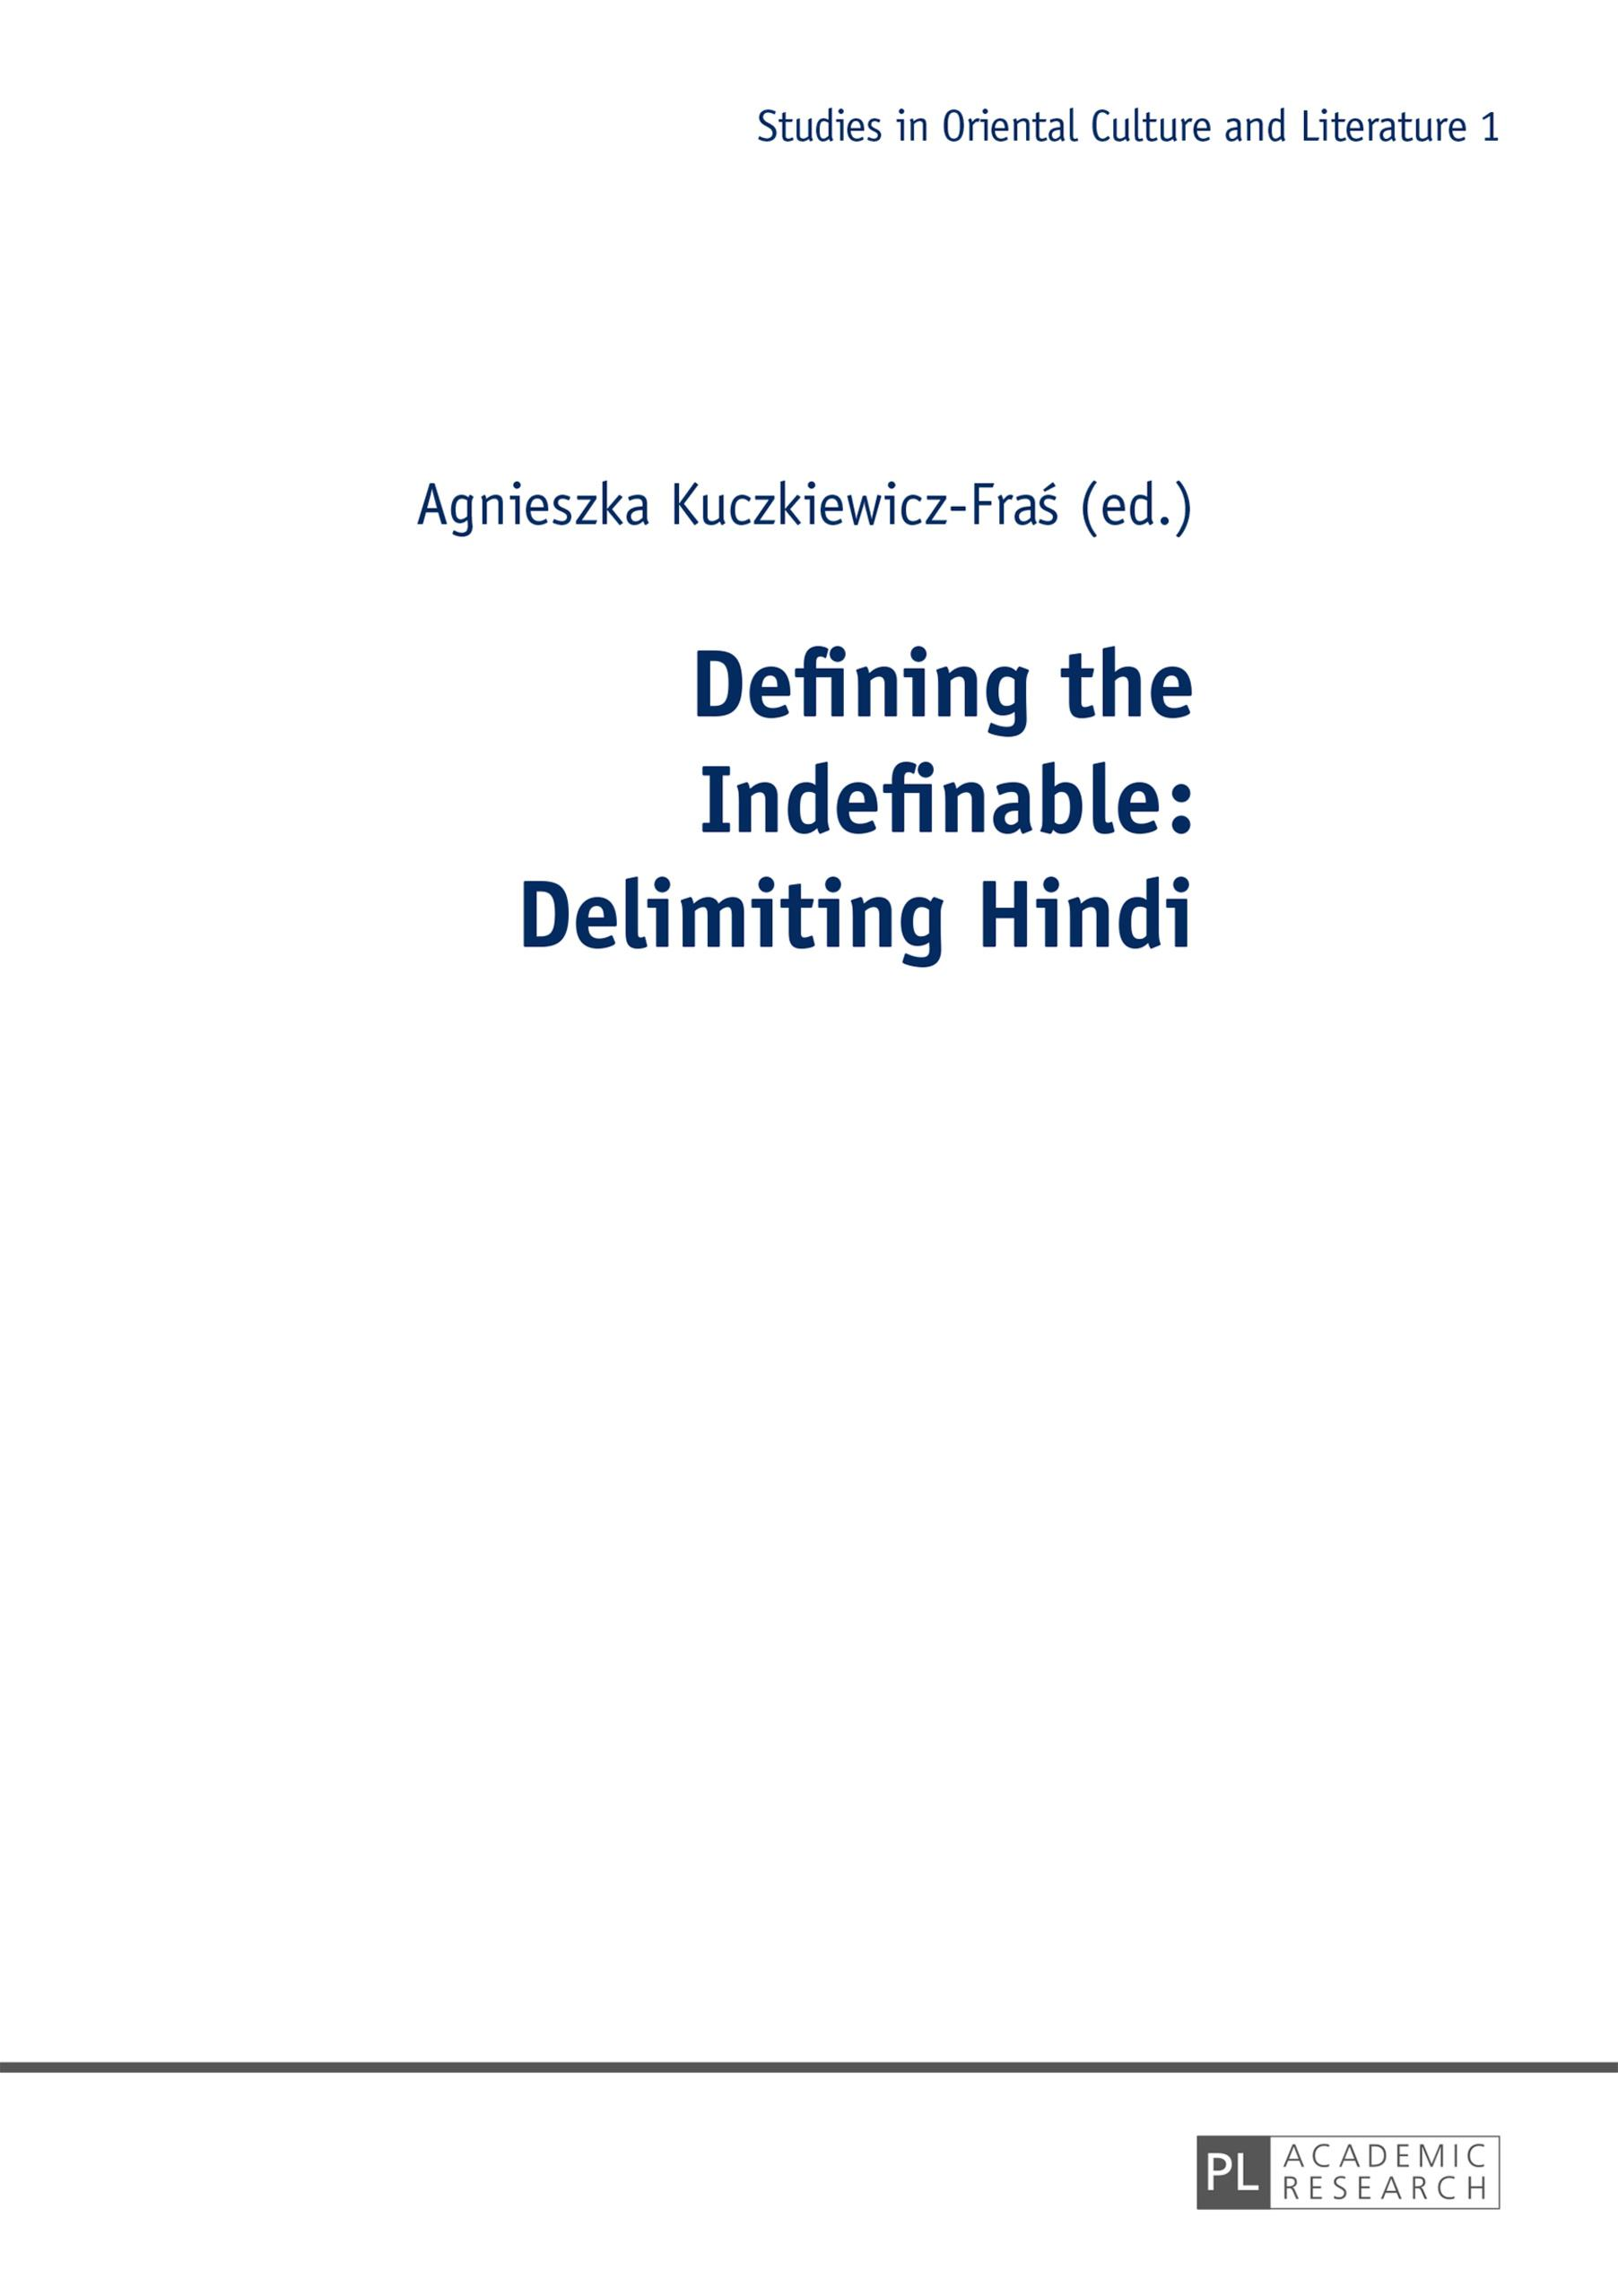 Defining the Indefinable: Delimiting Hindi Agnieszka Kuczkiewicz-Fras